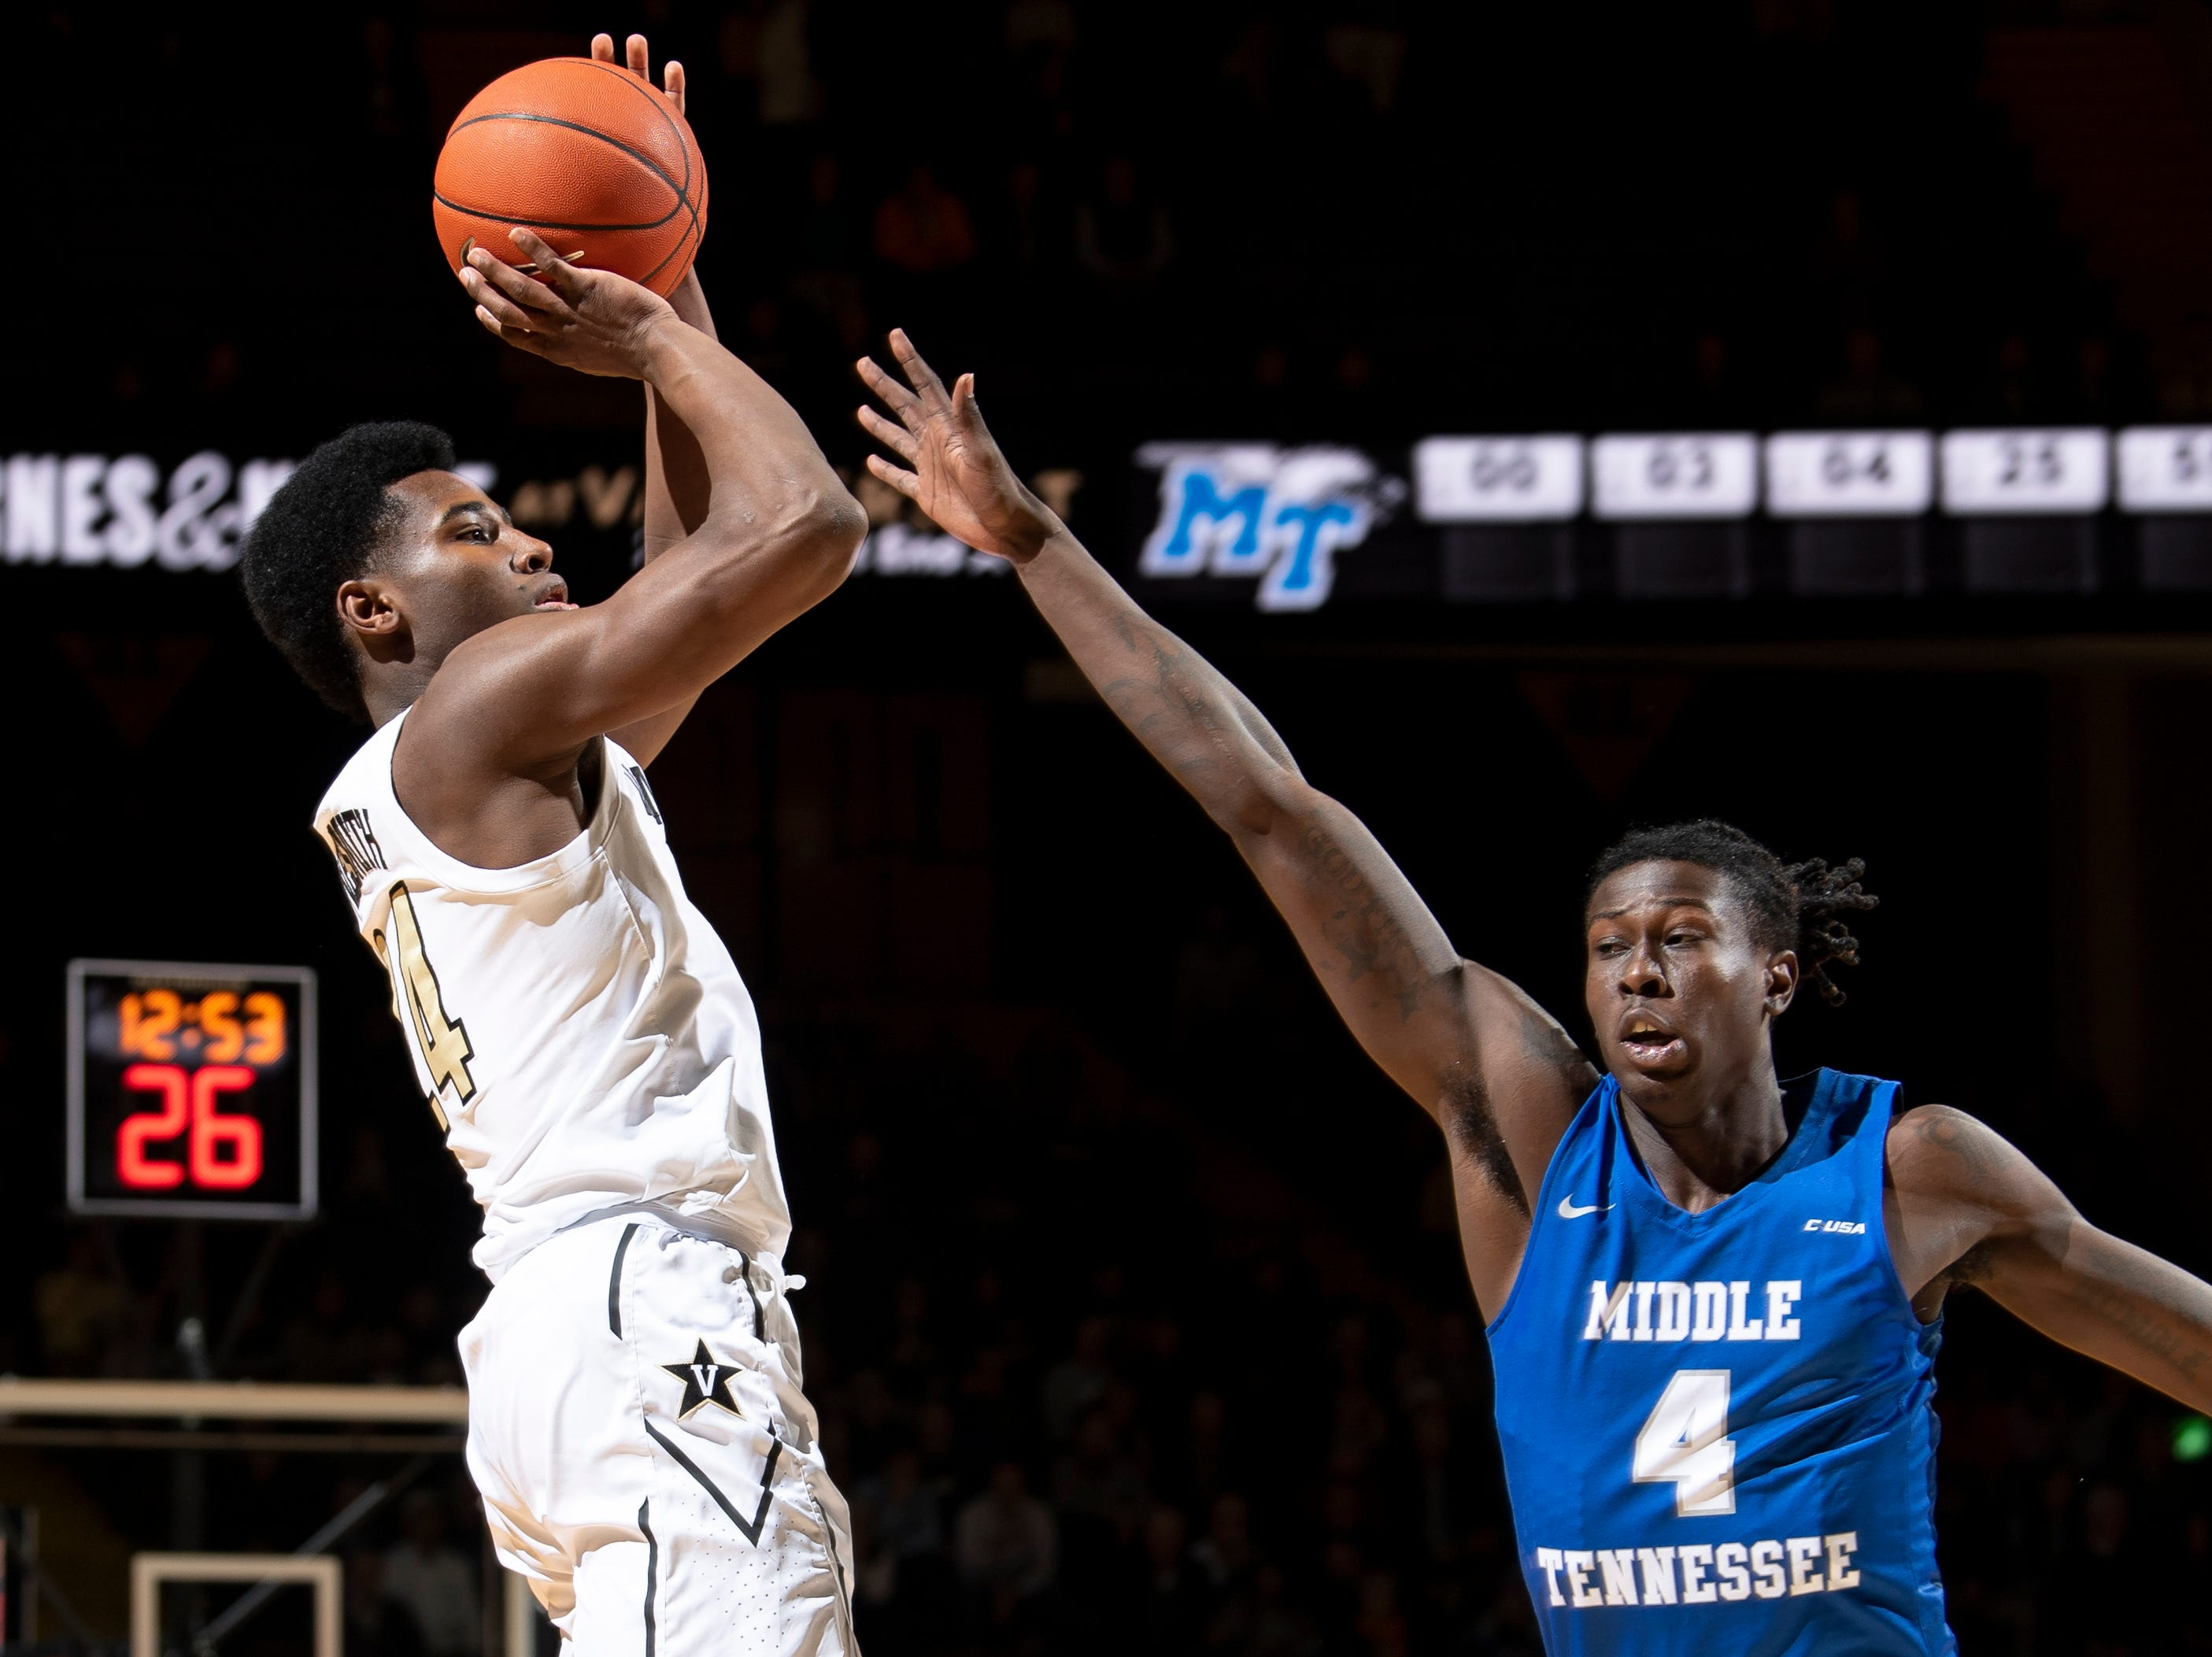 Vanderbilt forward Aaron Nesmith (24) shoots over MTSU forward James Hawthorne (4) during the first half at Memorial Gym in Nashville, Tenn., Wednesday, Dec. 5, 2018.